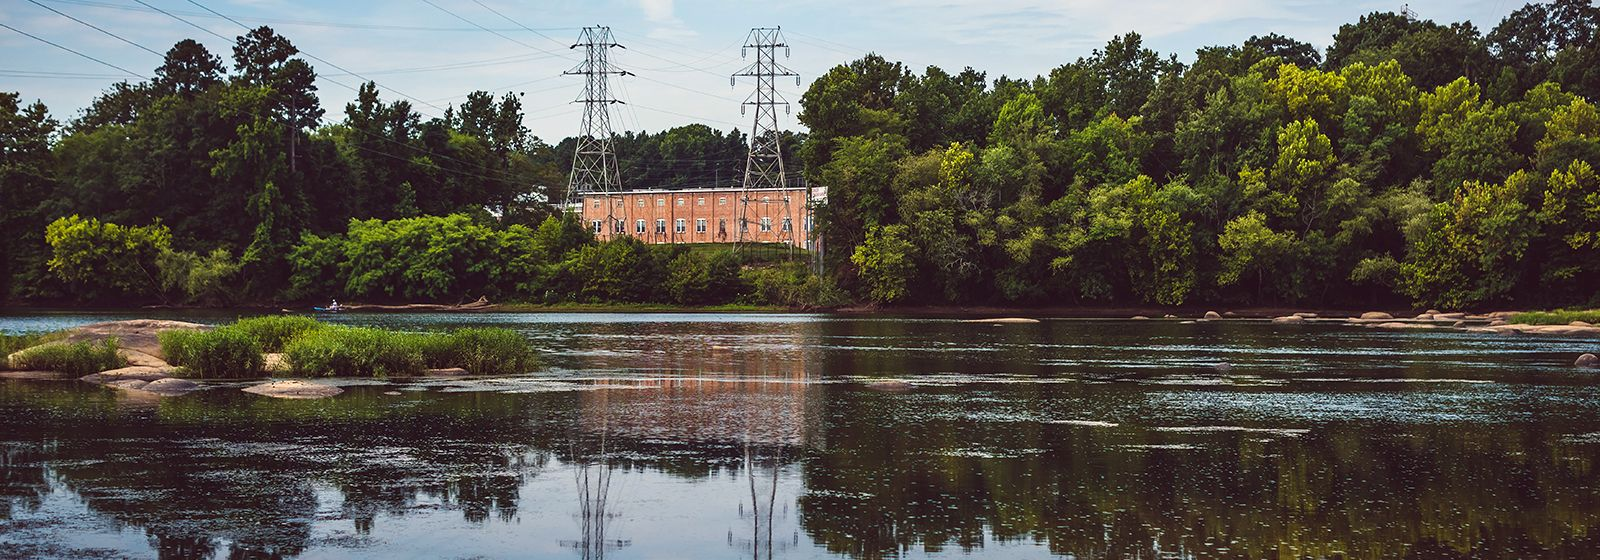 A  powerhouse on the Pee Dee River